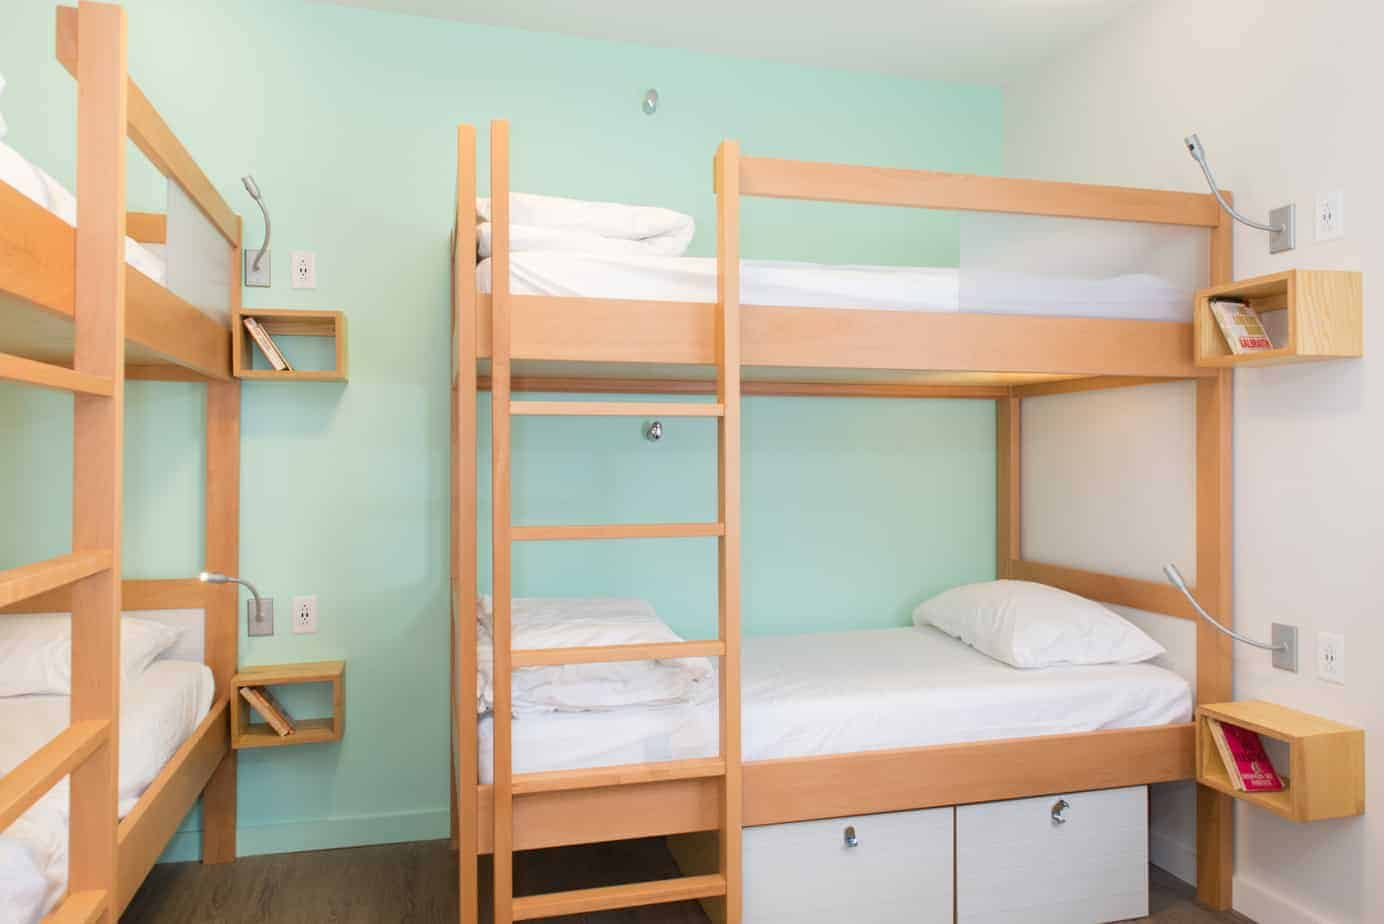 standard-quad-room-4-the-quisby-new-orleans-hostel